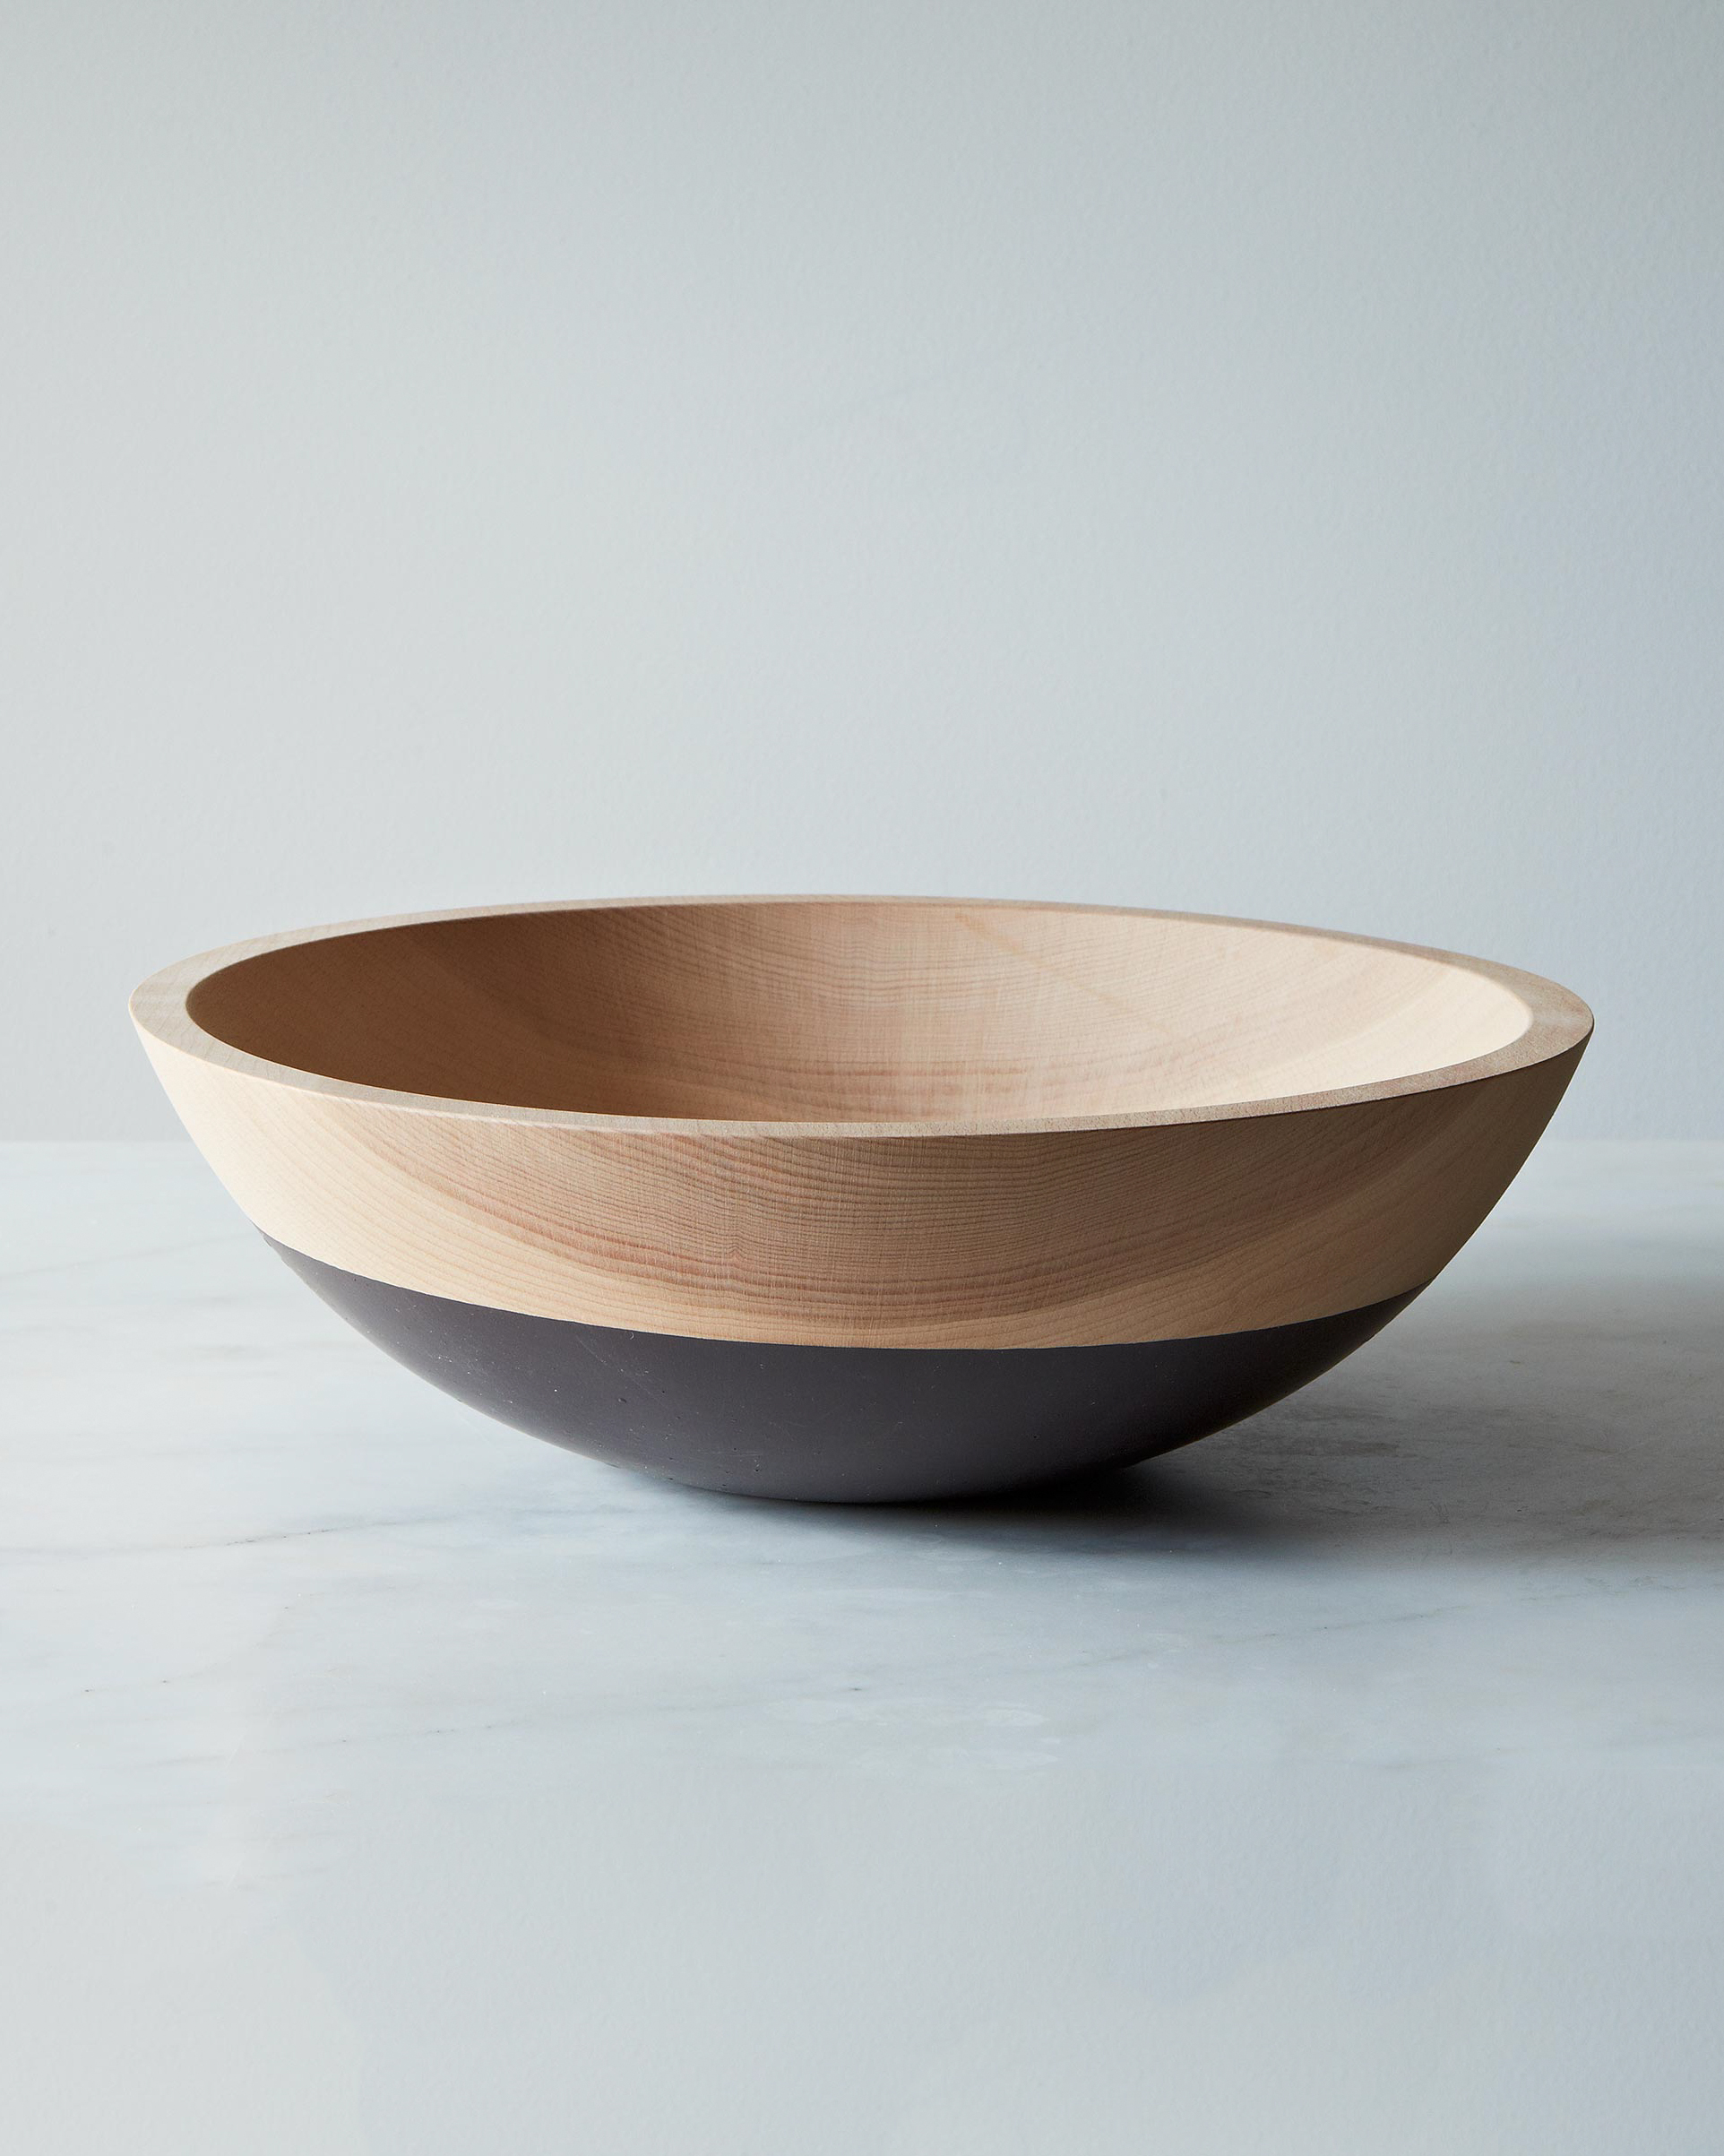 Willful Hand-Dipped Beech Wood Bowl